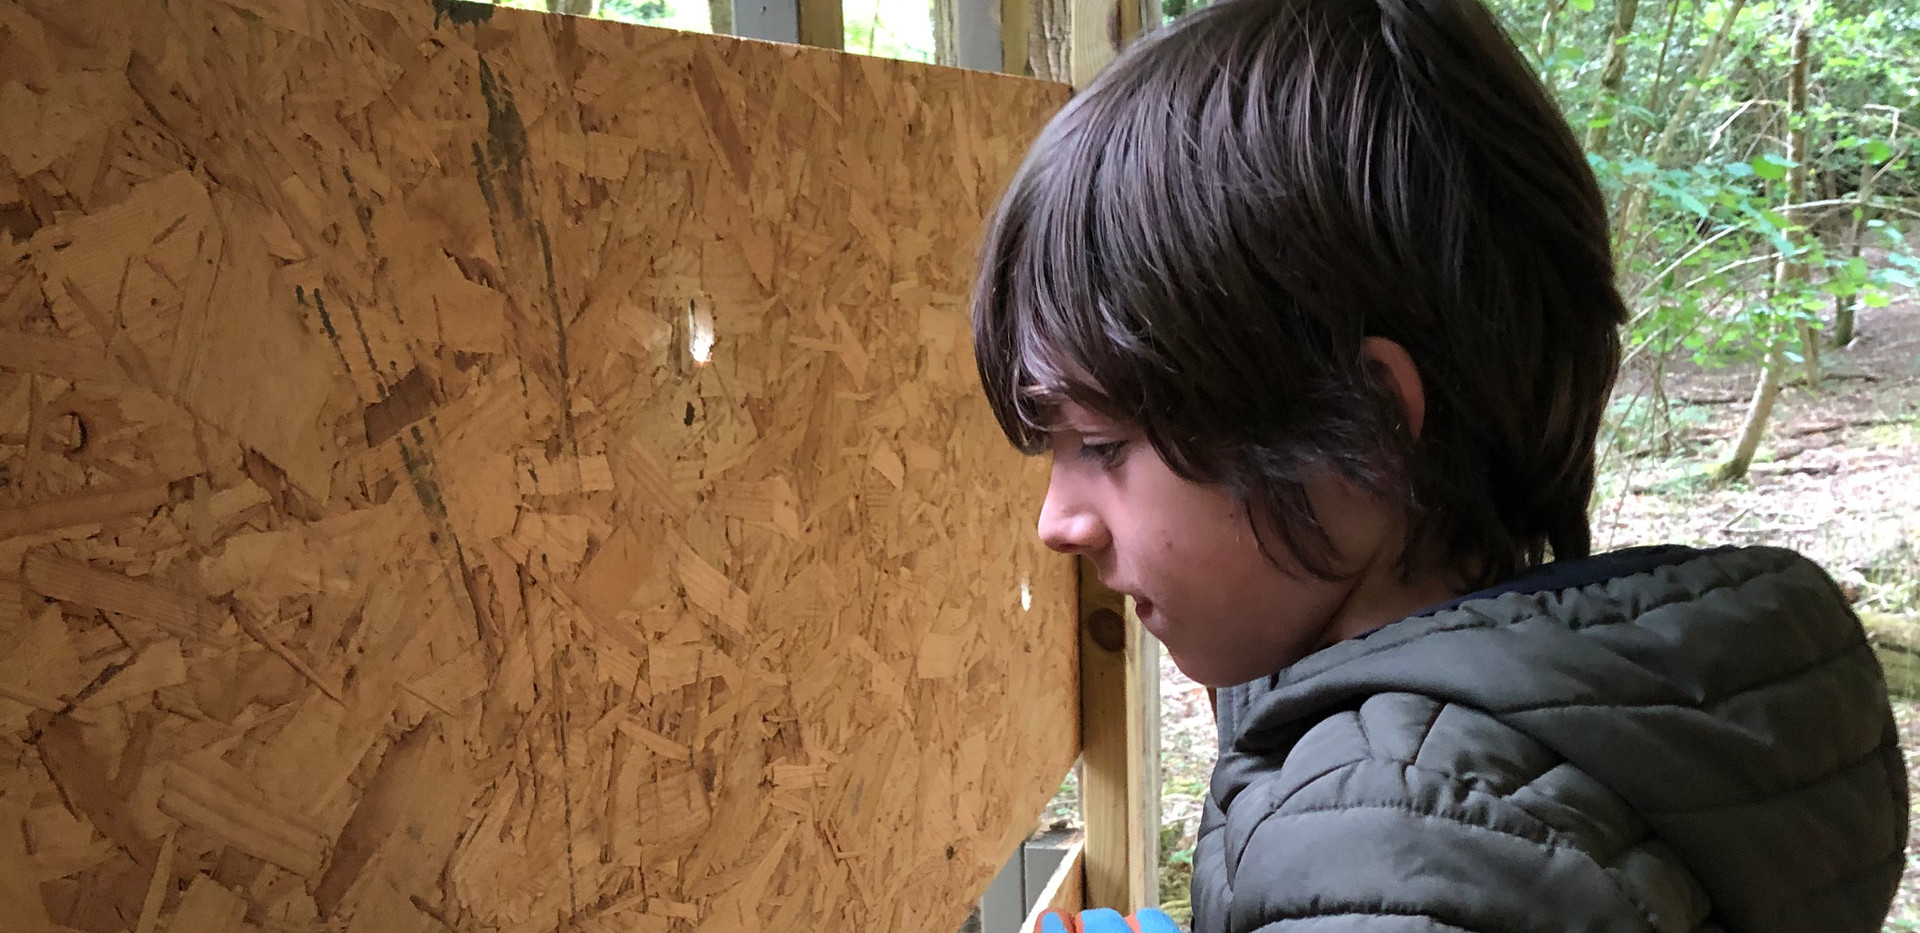 Drilling holes in the nature hide.